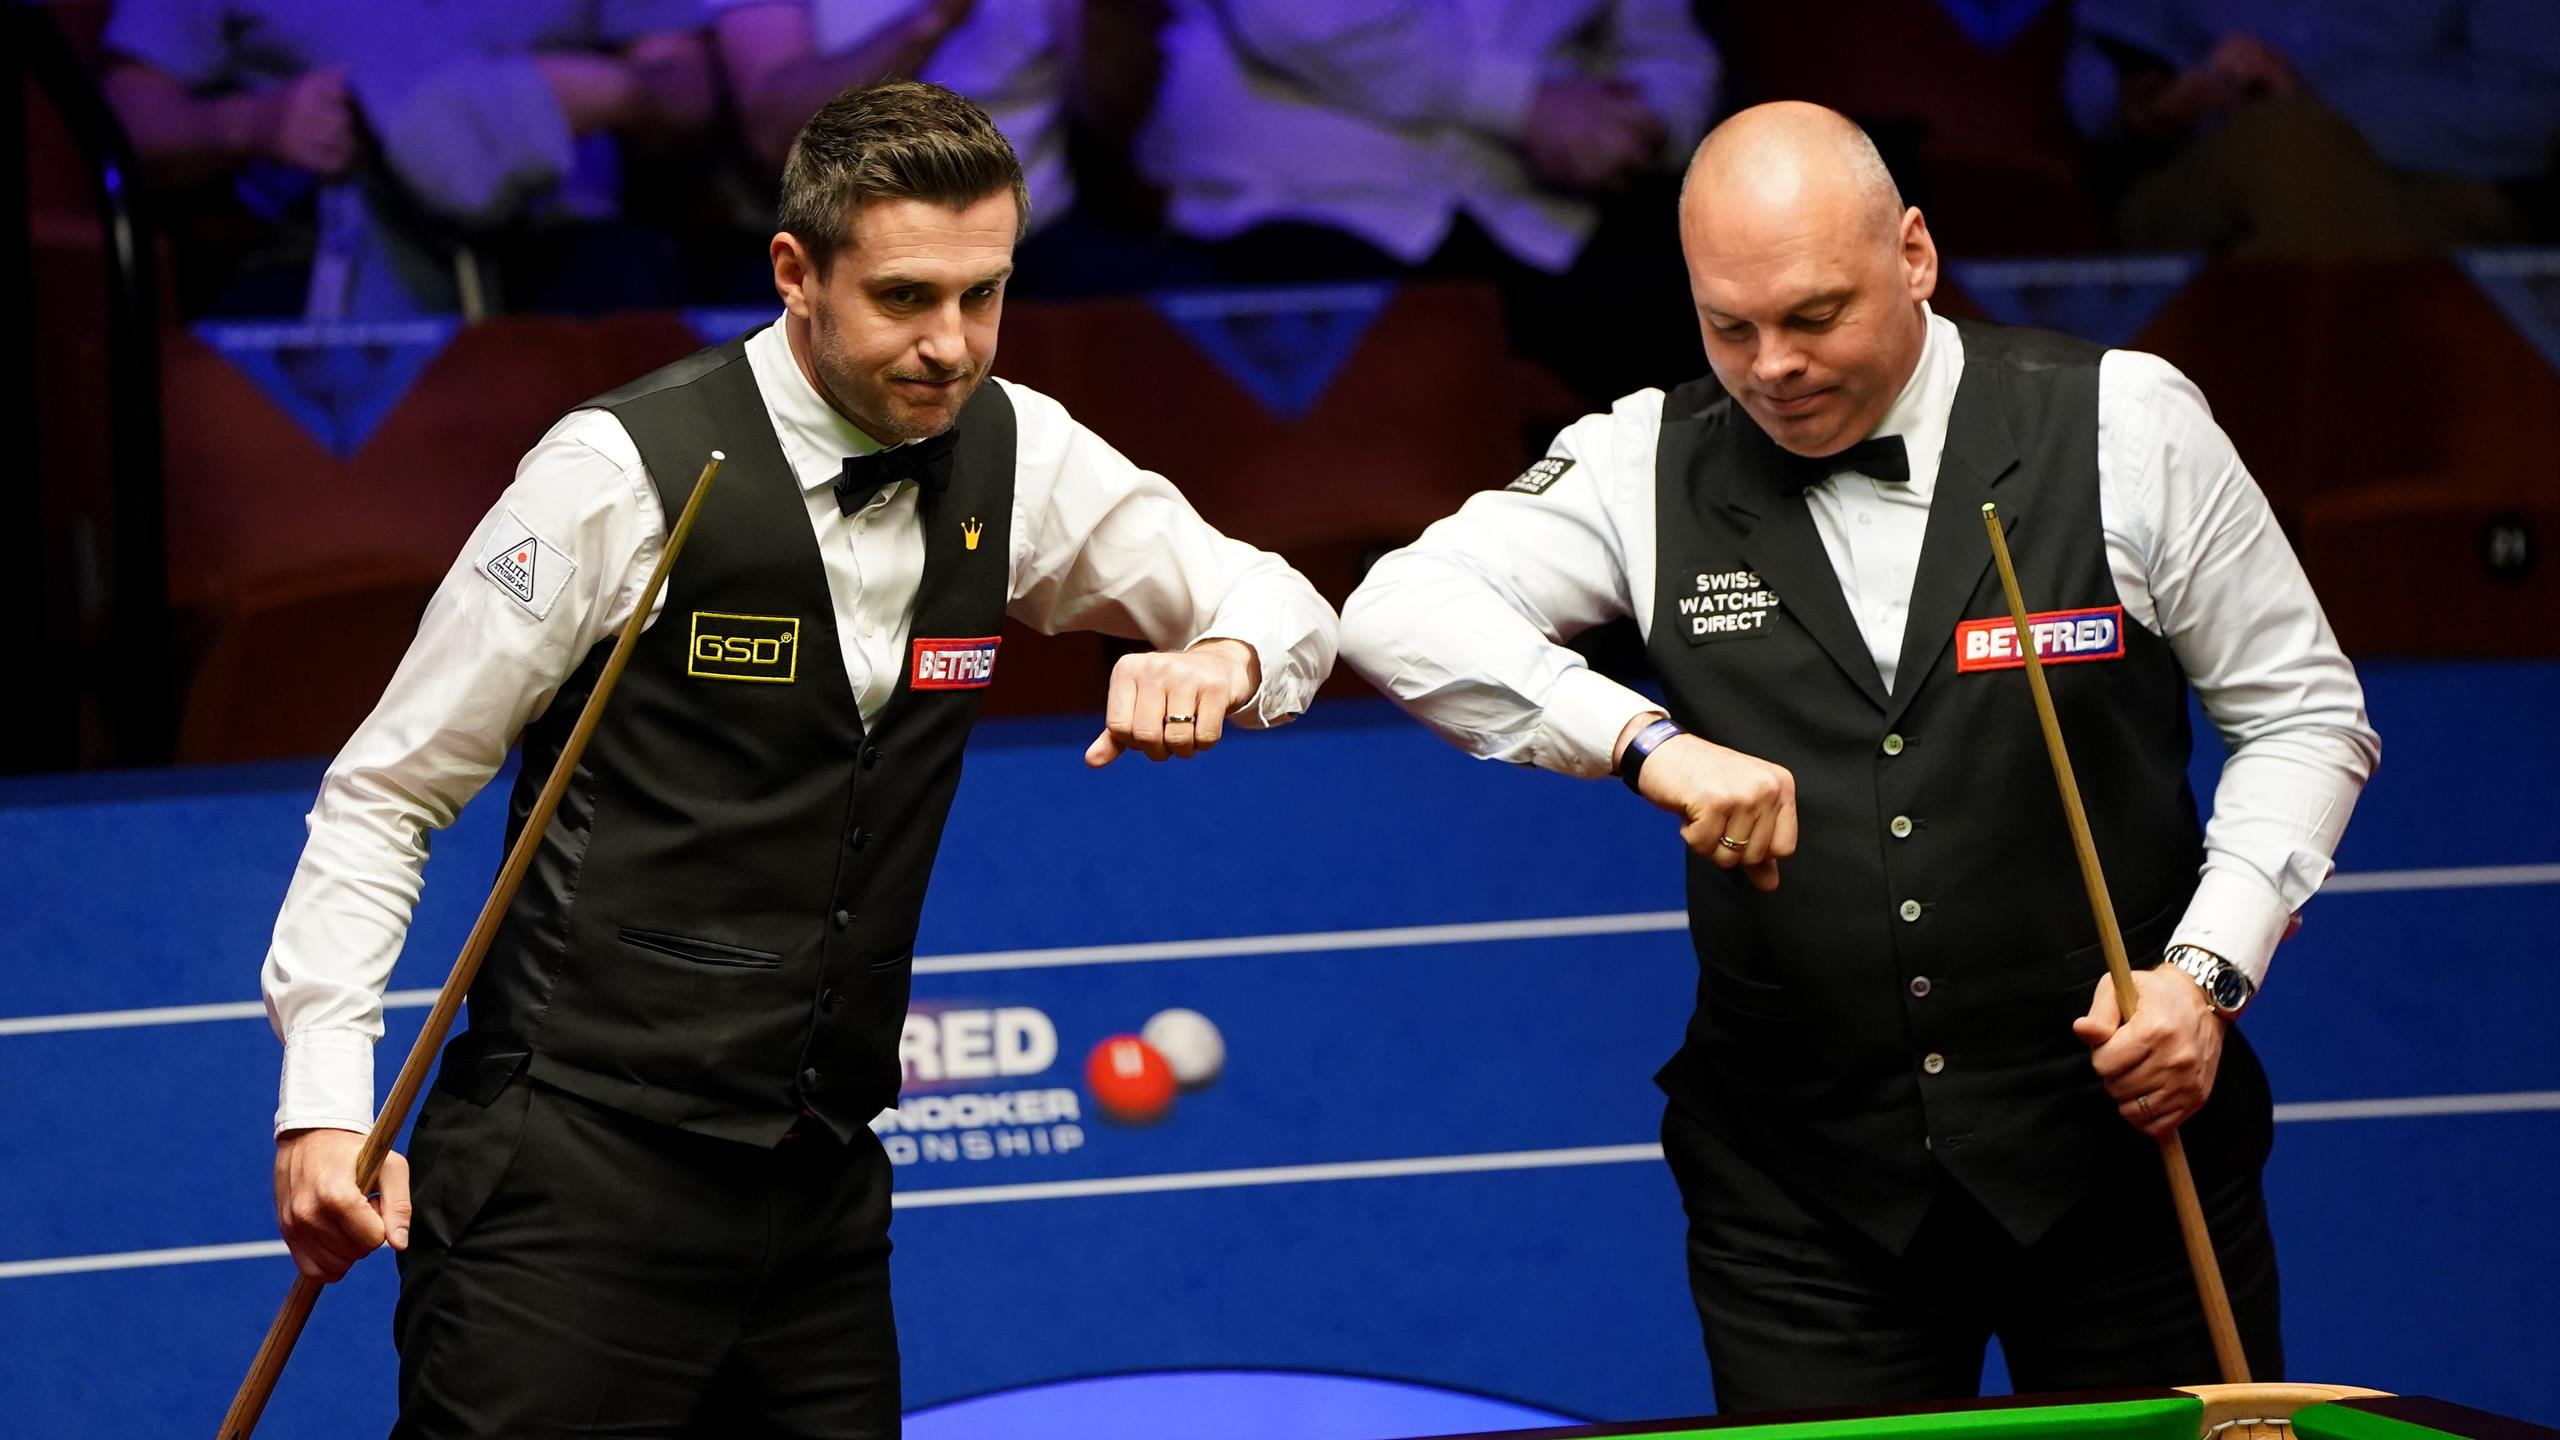 World Snooker Championship: Mark Selby and Shaun Murphy to meet in final